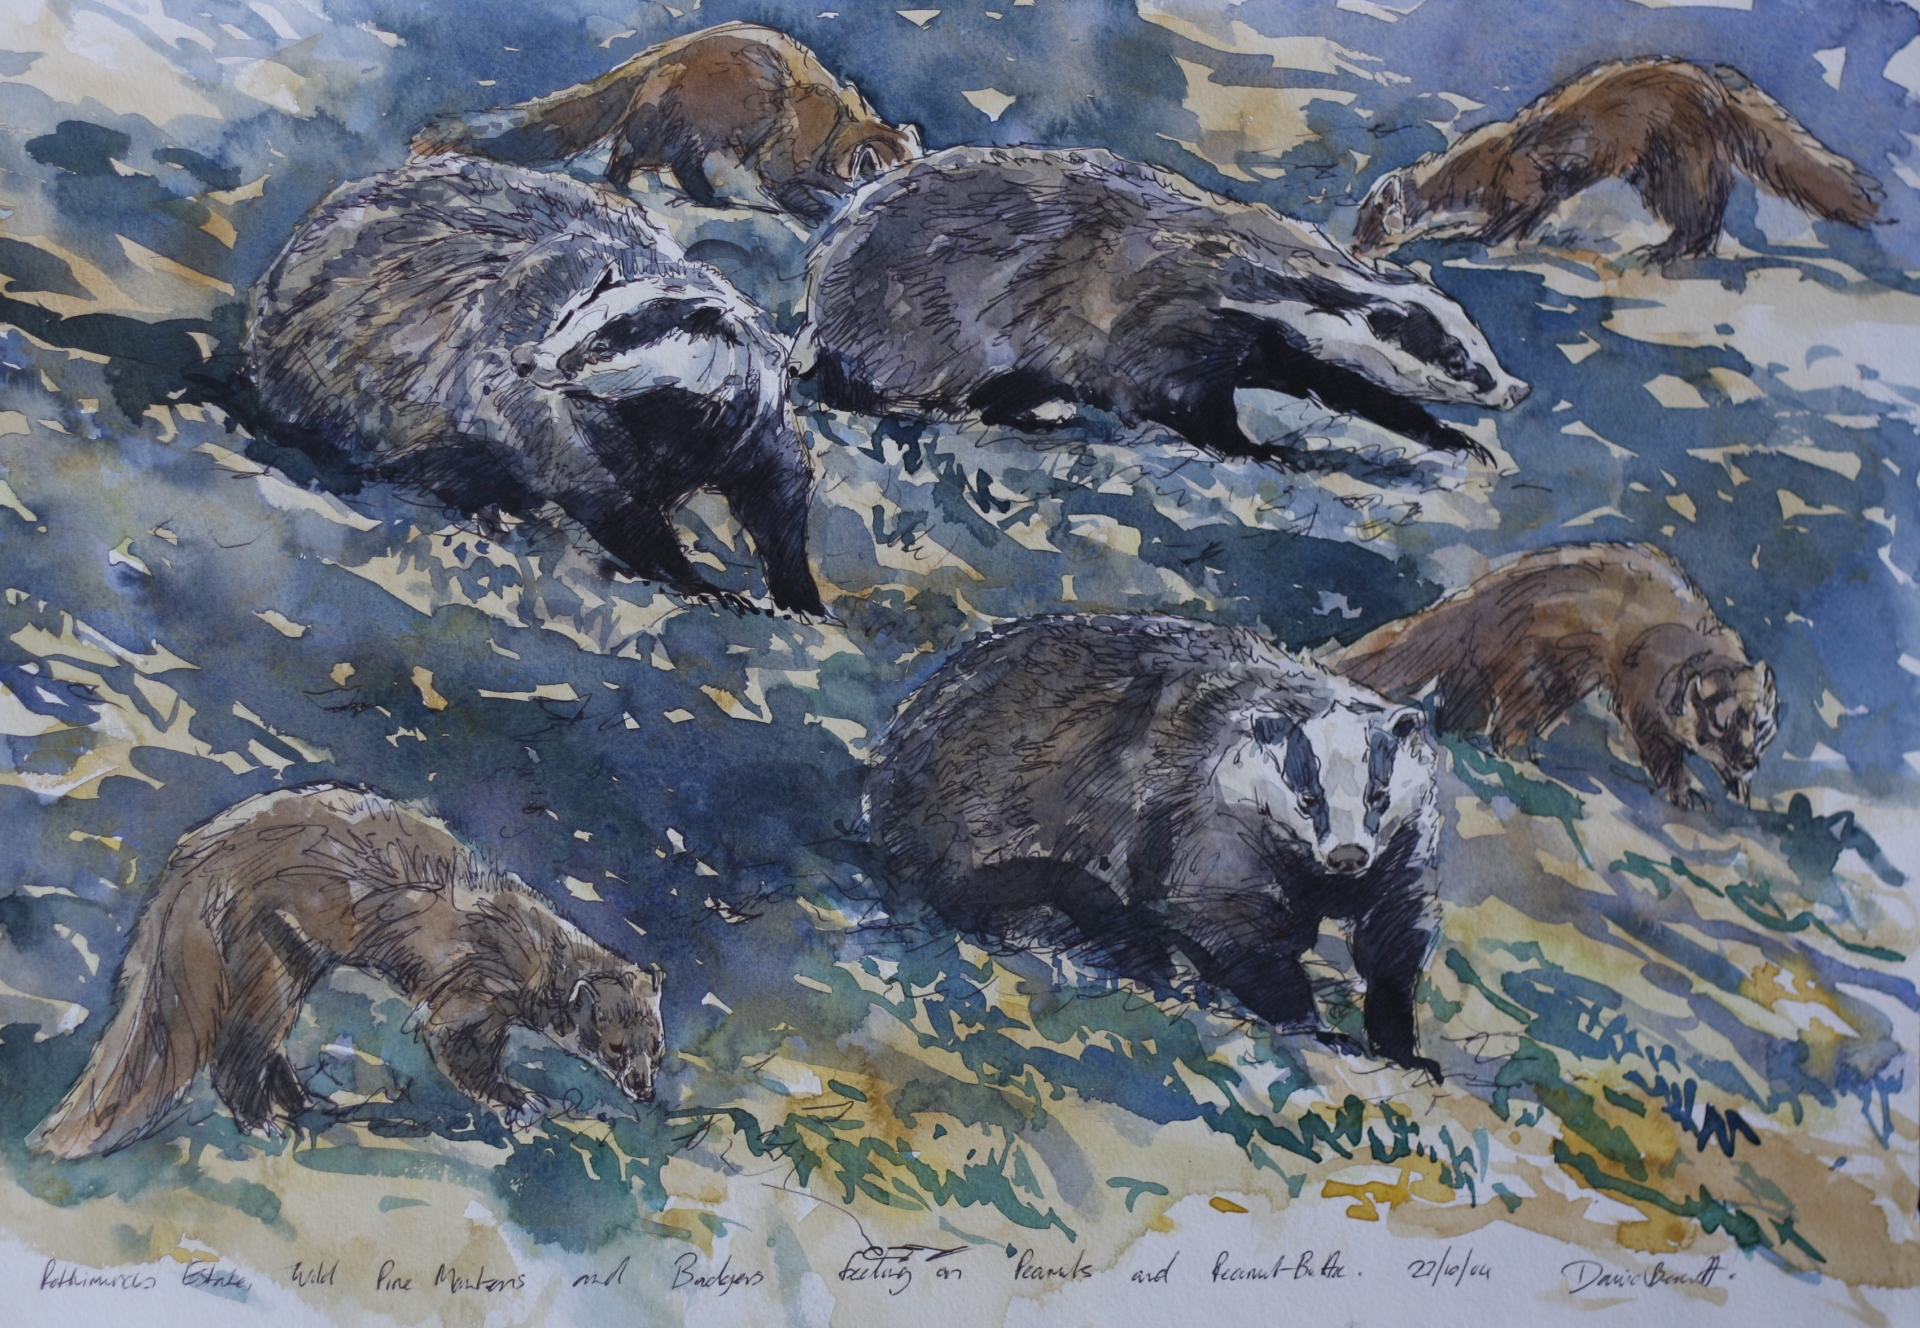 Badger and Pine Marten studies, Rothiemurchus estate